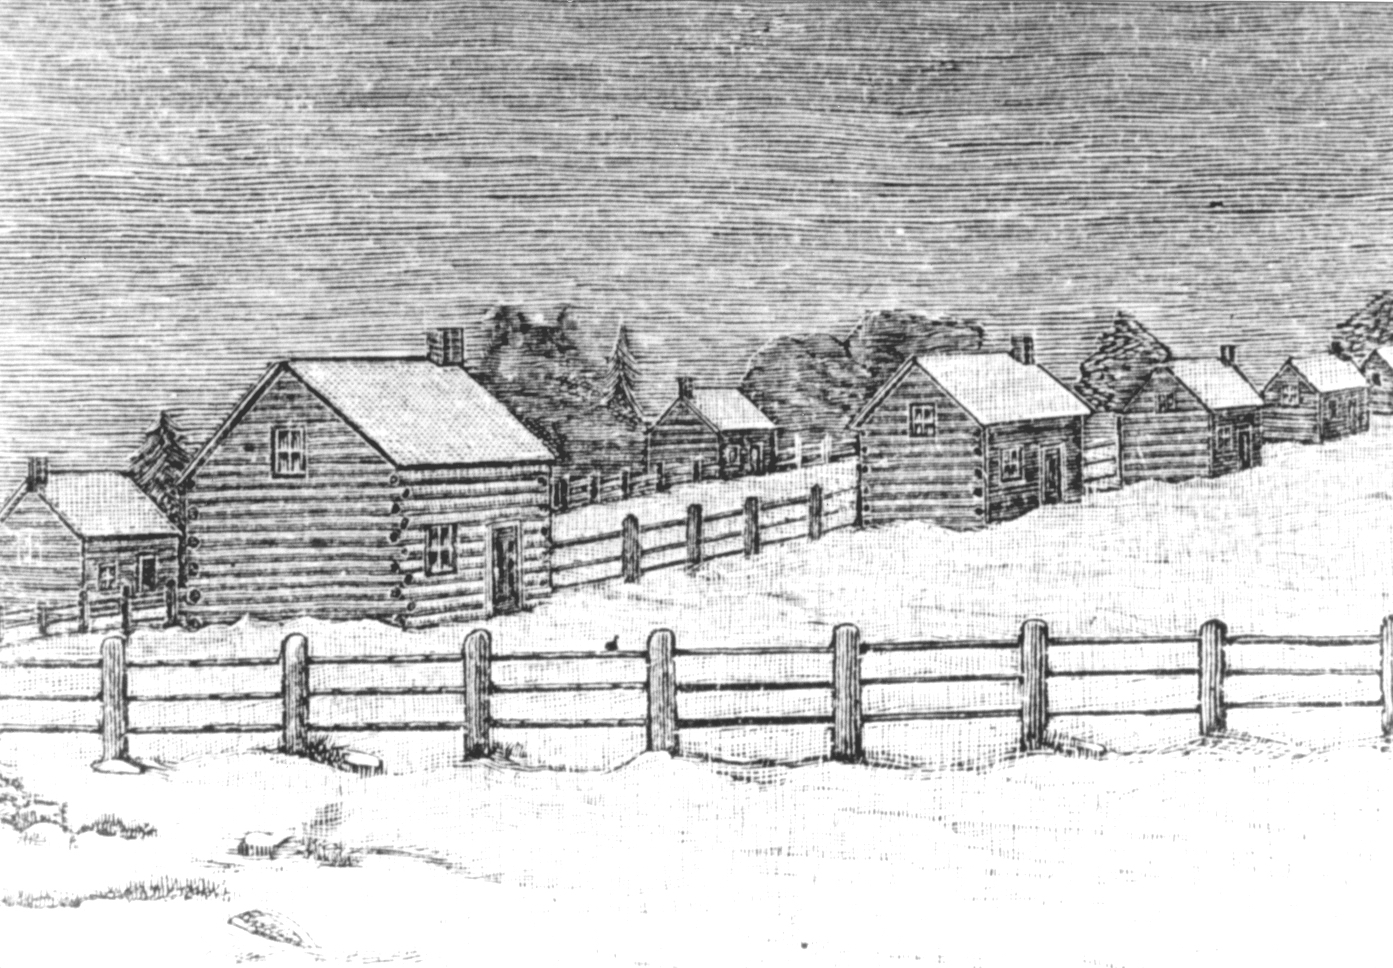 Sketch of the Mississauga Mission Village on the Credit River 1827 by Egerton Ryerson